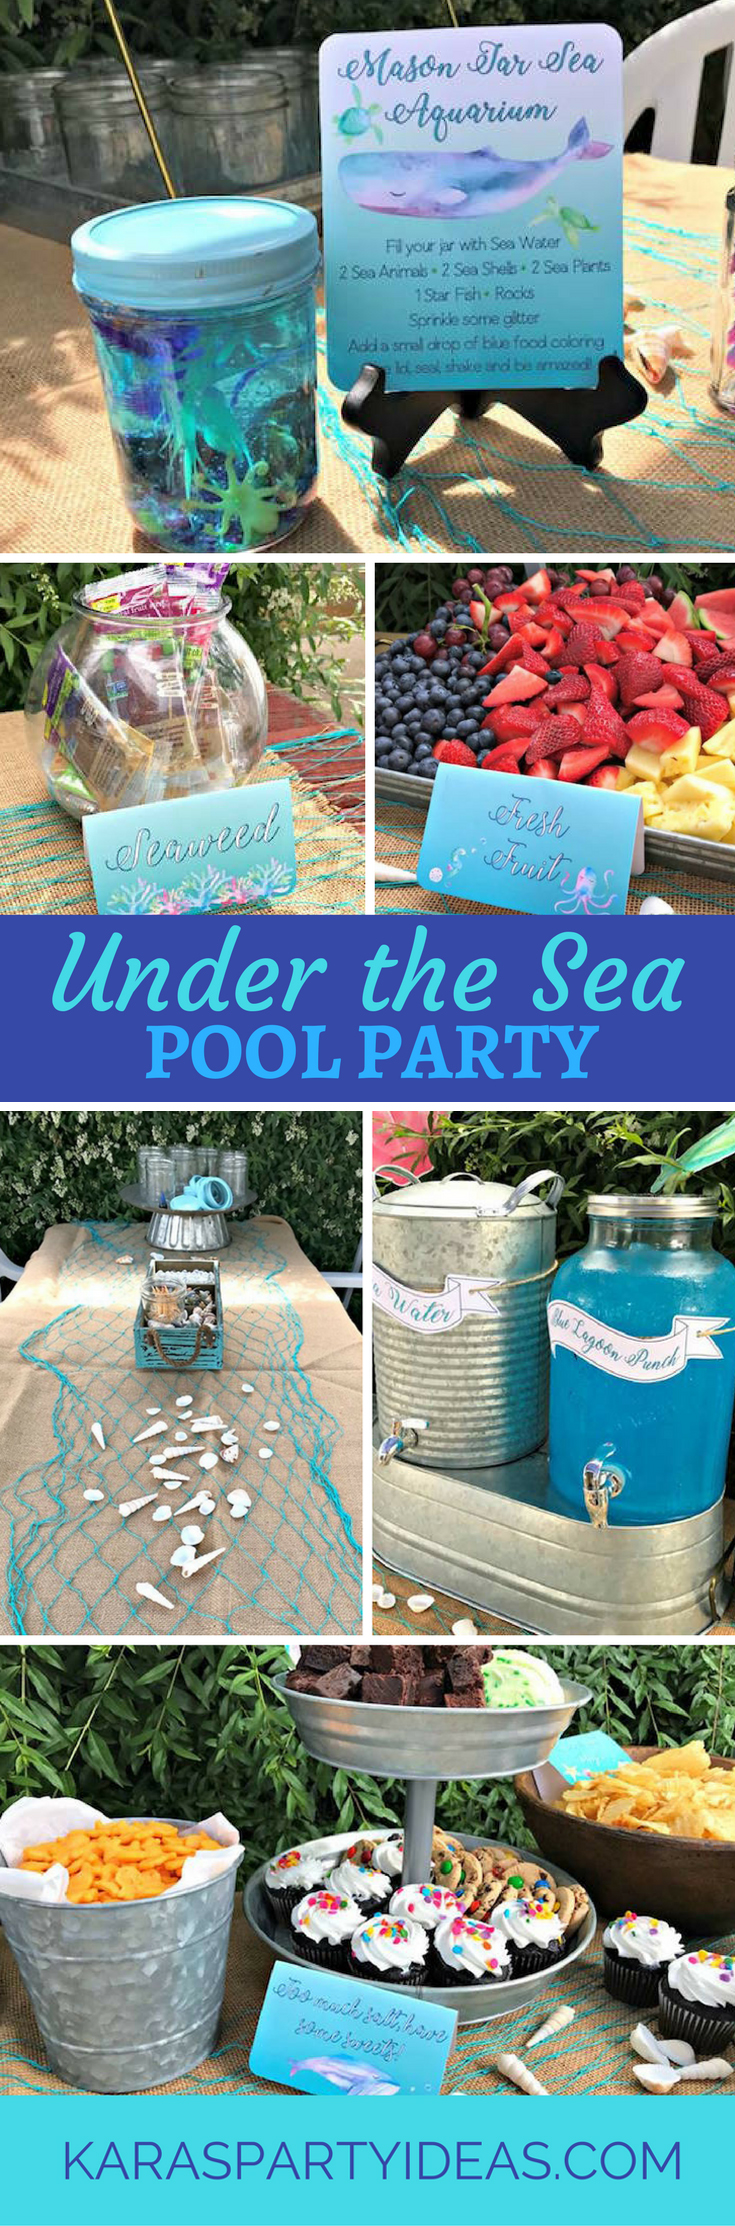 Under the Sea Pool Party via Kara's Party Ideas